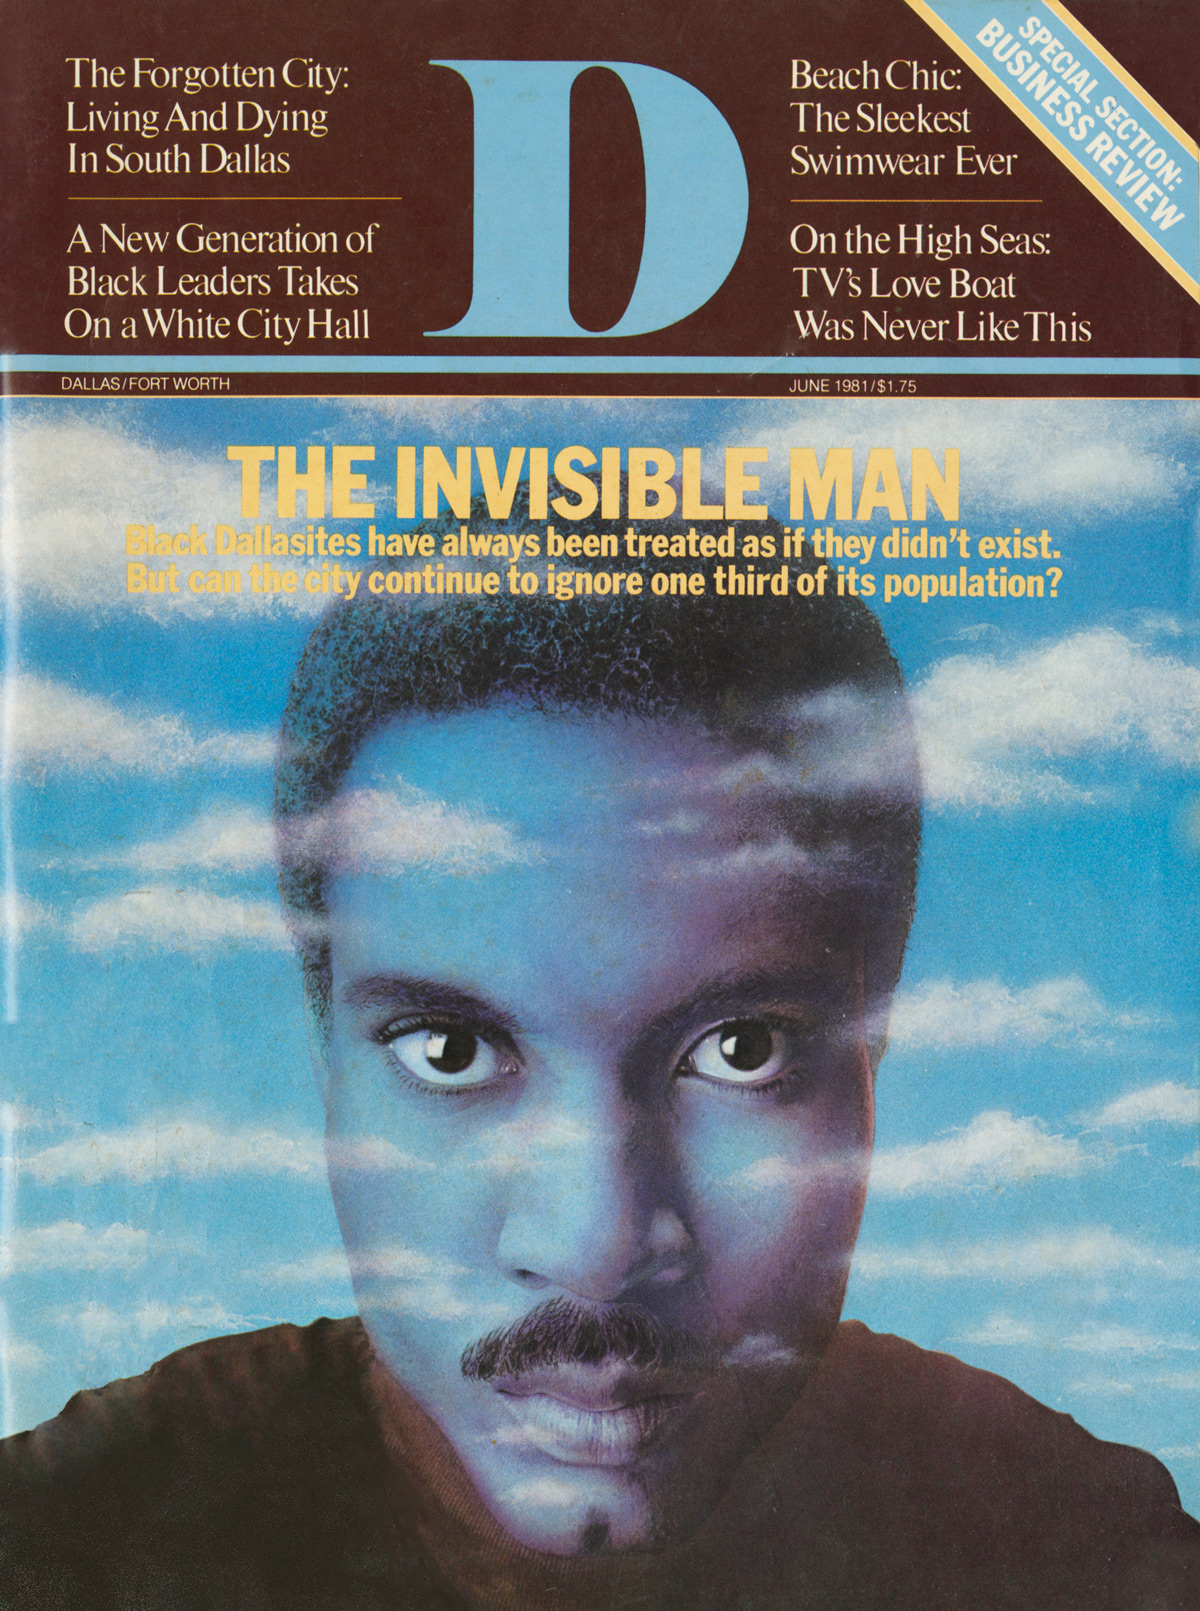 June 1981 cover